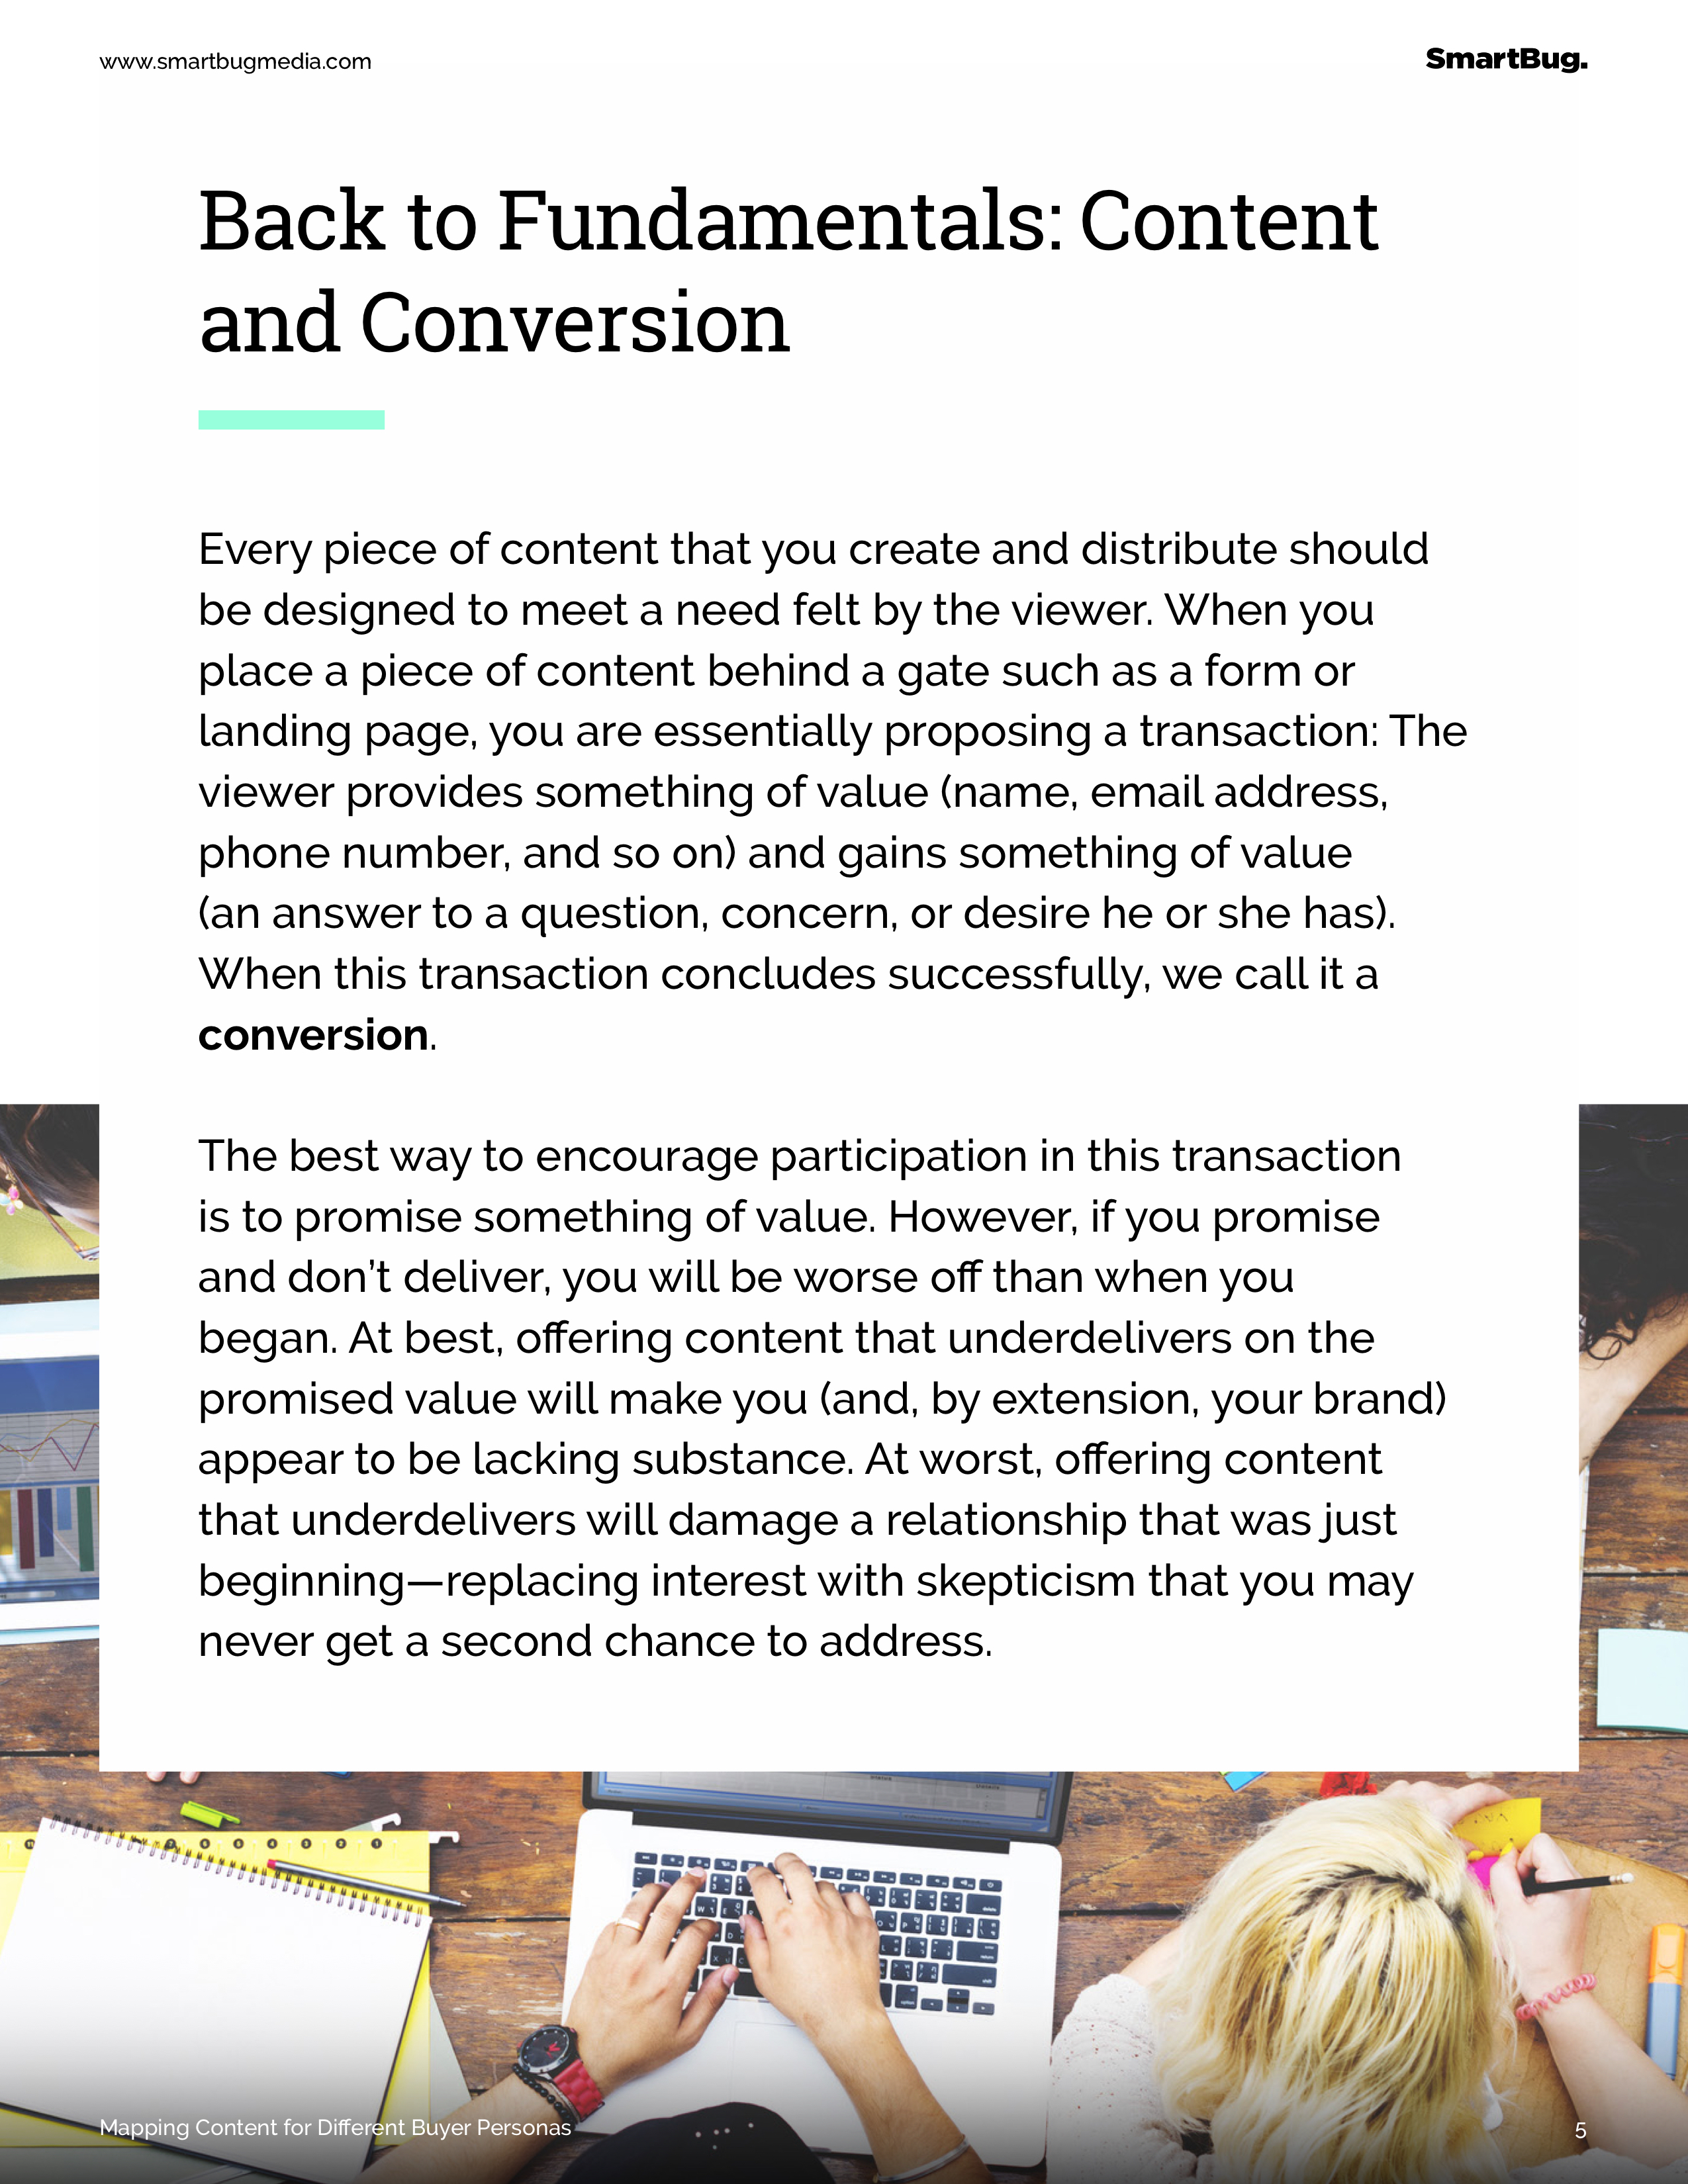 Back to Fundamentals: Content and Conversion